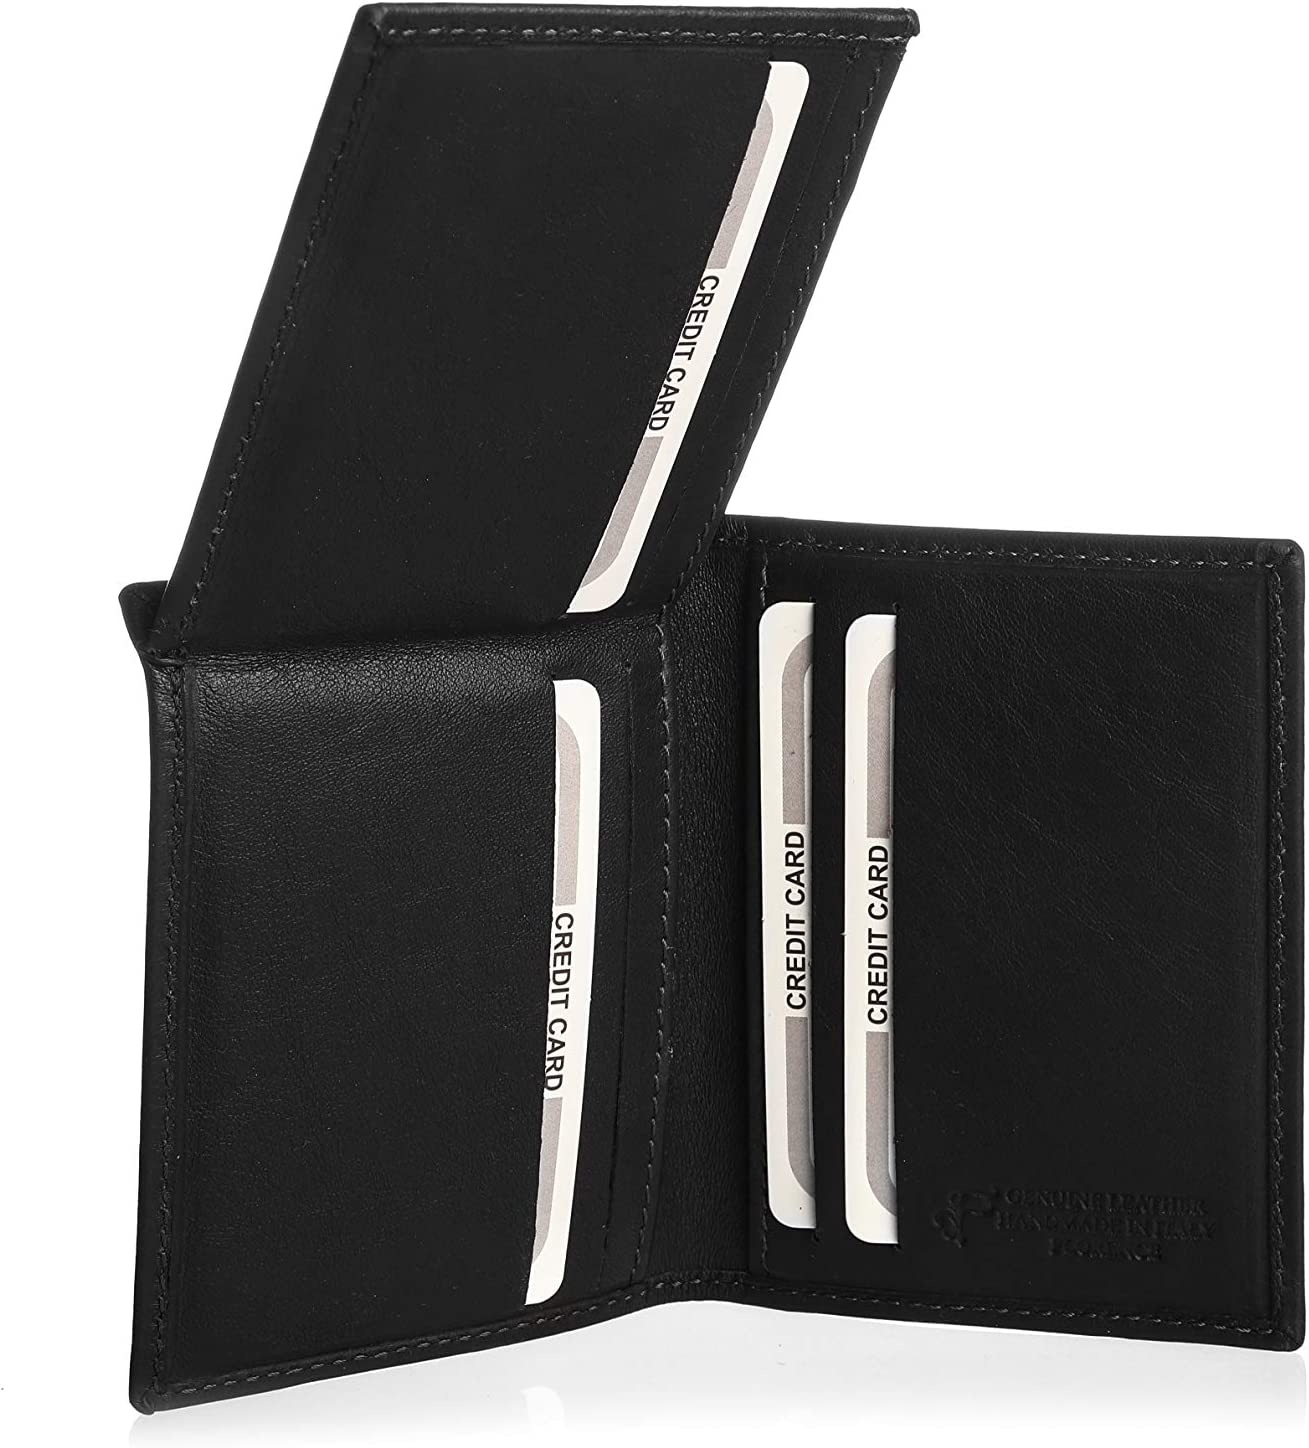 Fiorentini-Tuscany Men's Sales results No. 1 Handmade Leather and Wallet-Sleek Slim Our shop most popular